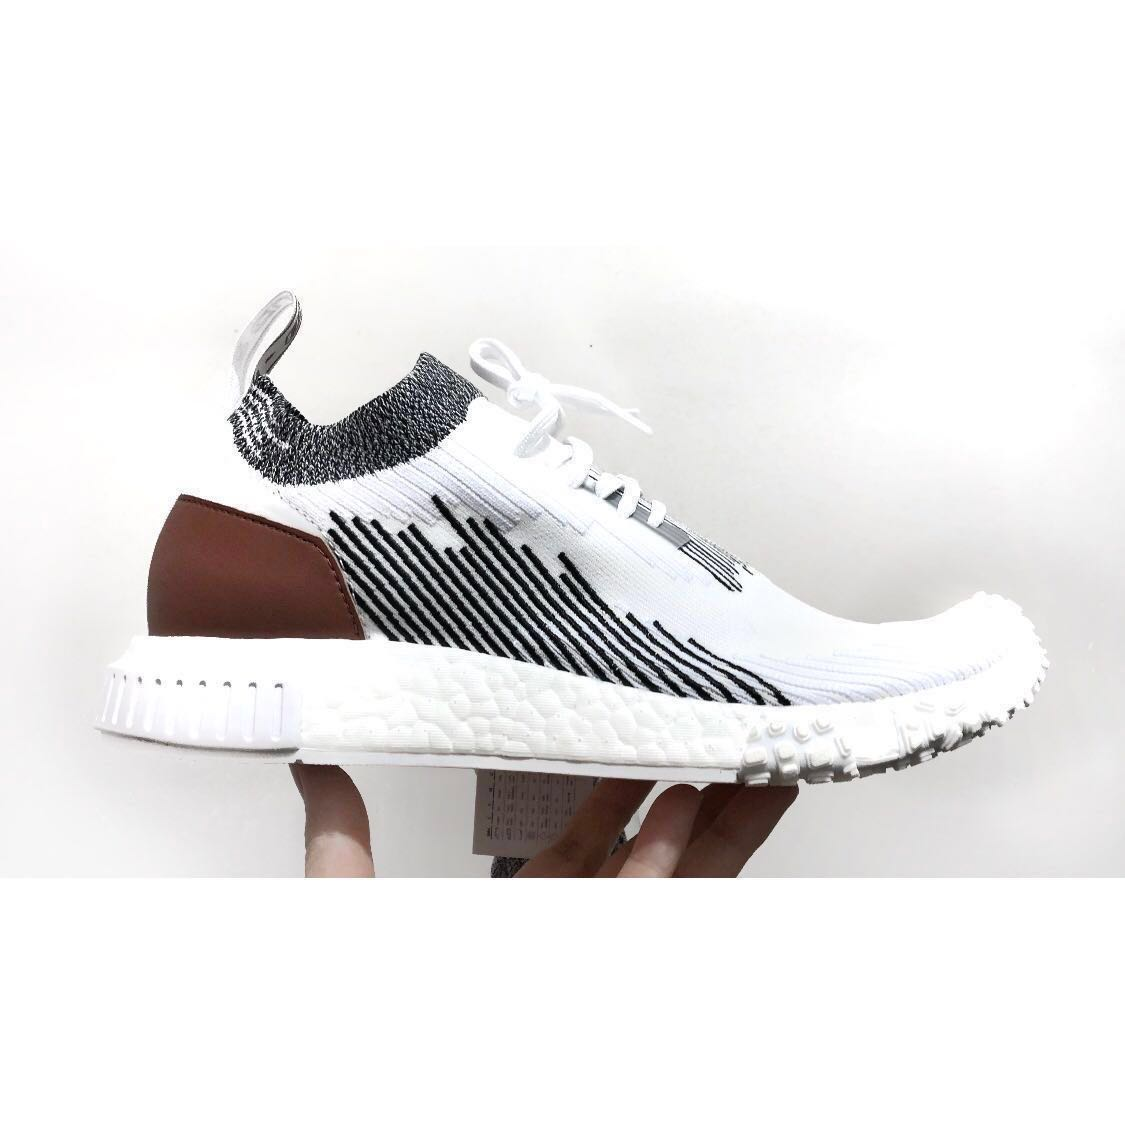 b50739b402830 🙌🏼 UNUSED Adidas X The Whitaker Group NMD Racer PK AC8234